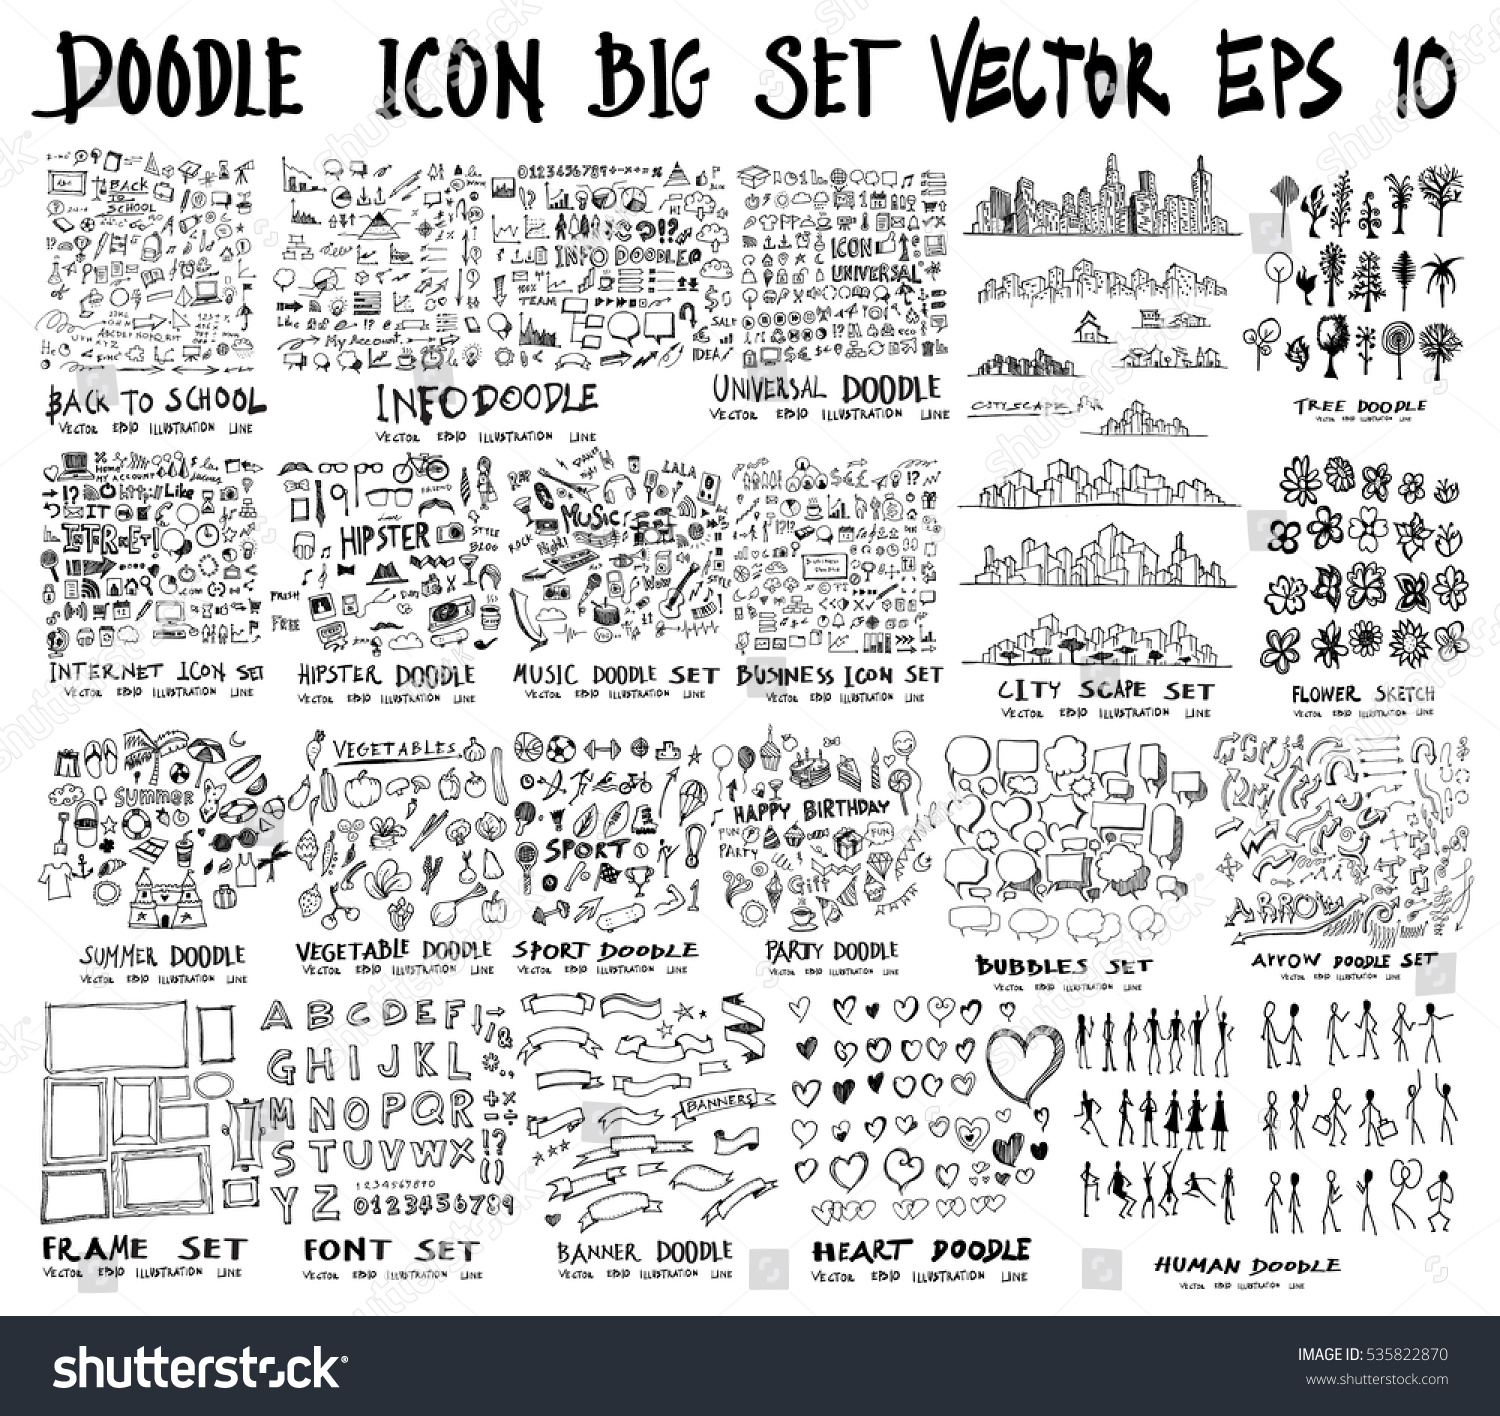 MEGA set of doodles of Back to school, Arrow ,Business, Social shopping elements, tree, Info, Internet, Universal, Party, Human, Creative, City scape, Sport, summer, Frame, Font, Banner, Heart,Music #535822870